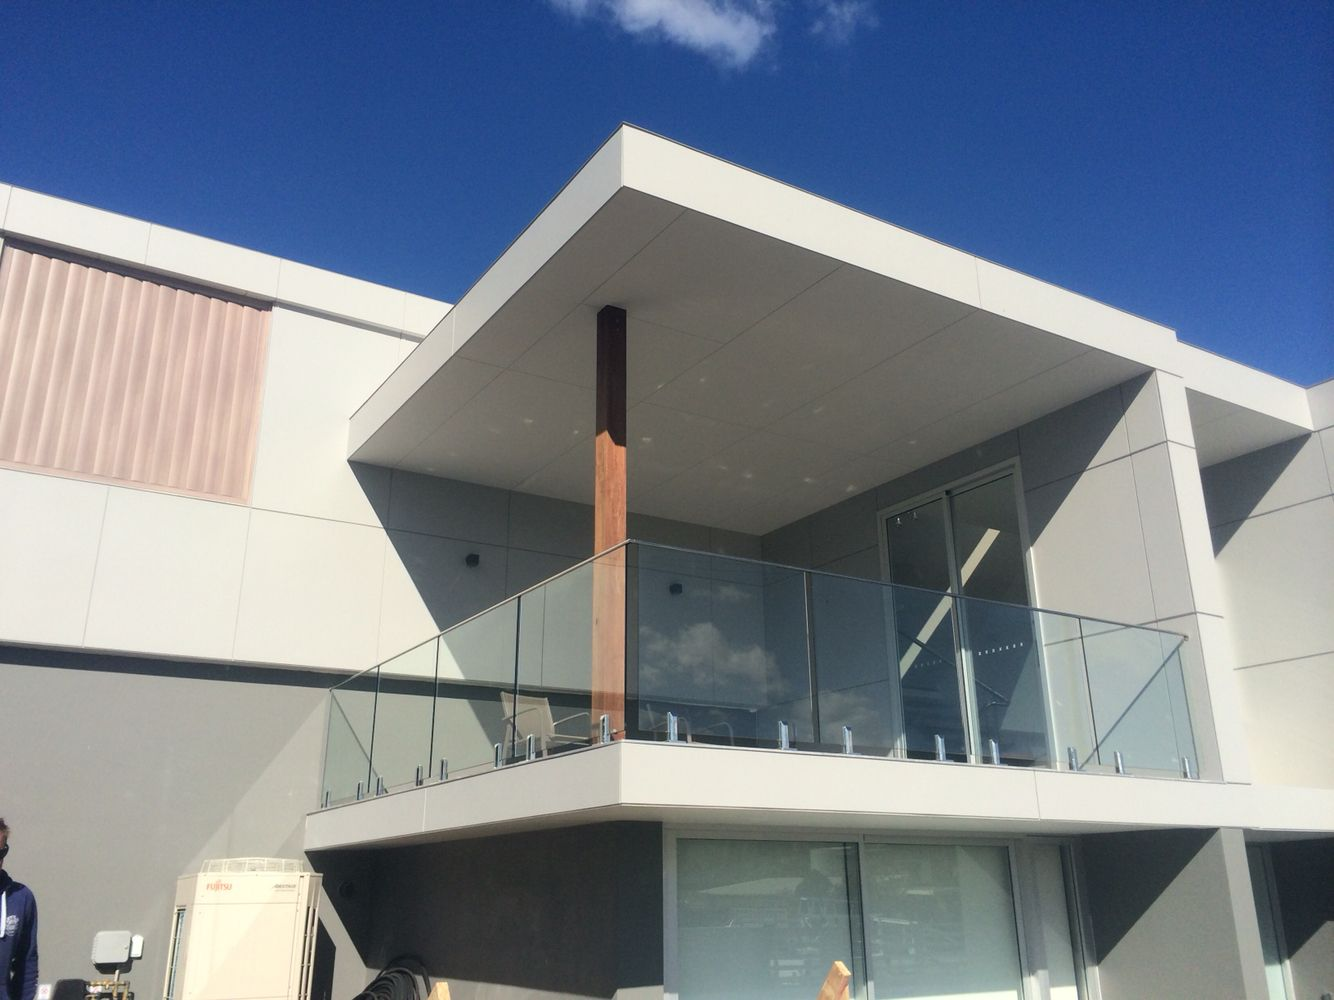 Glass Balustrade With Stainless Steel Spigots With Top Rail Frameless Glass Balustrade Glass Balustrade Architecture